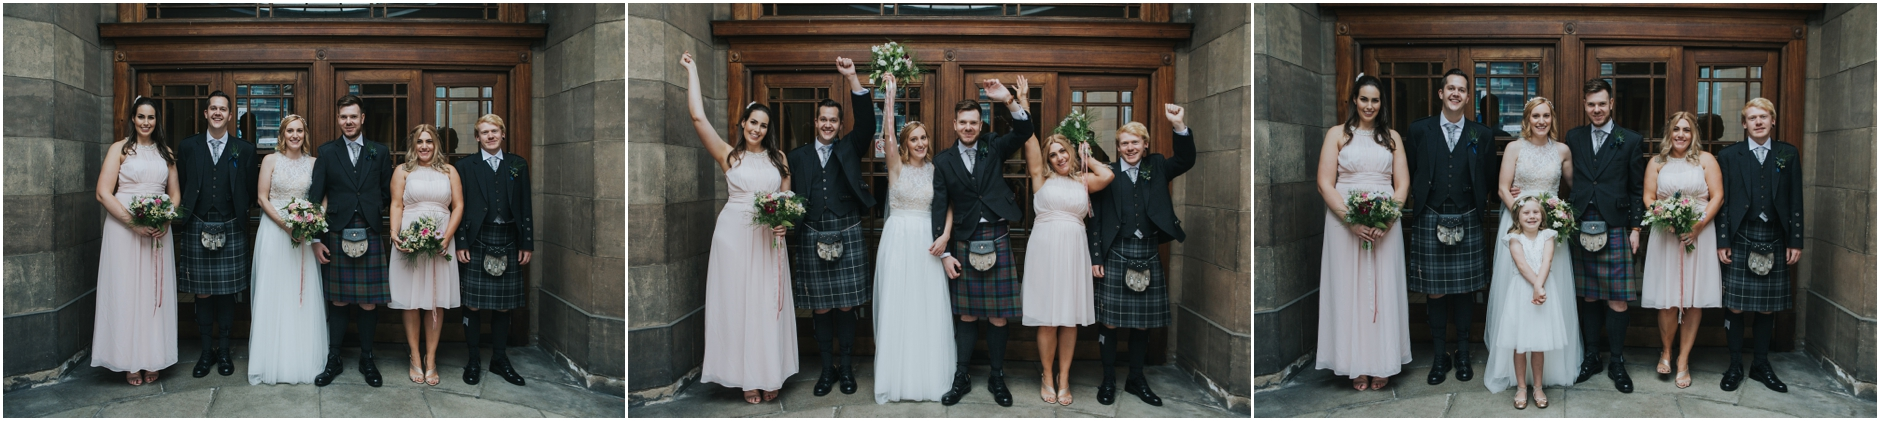 wedding portraits thomas morton hall leith theatre edinburgh